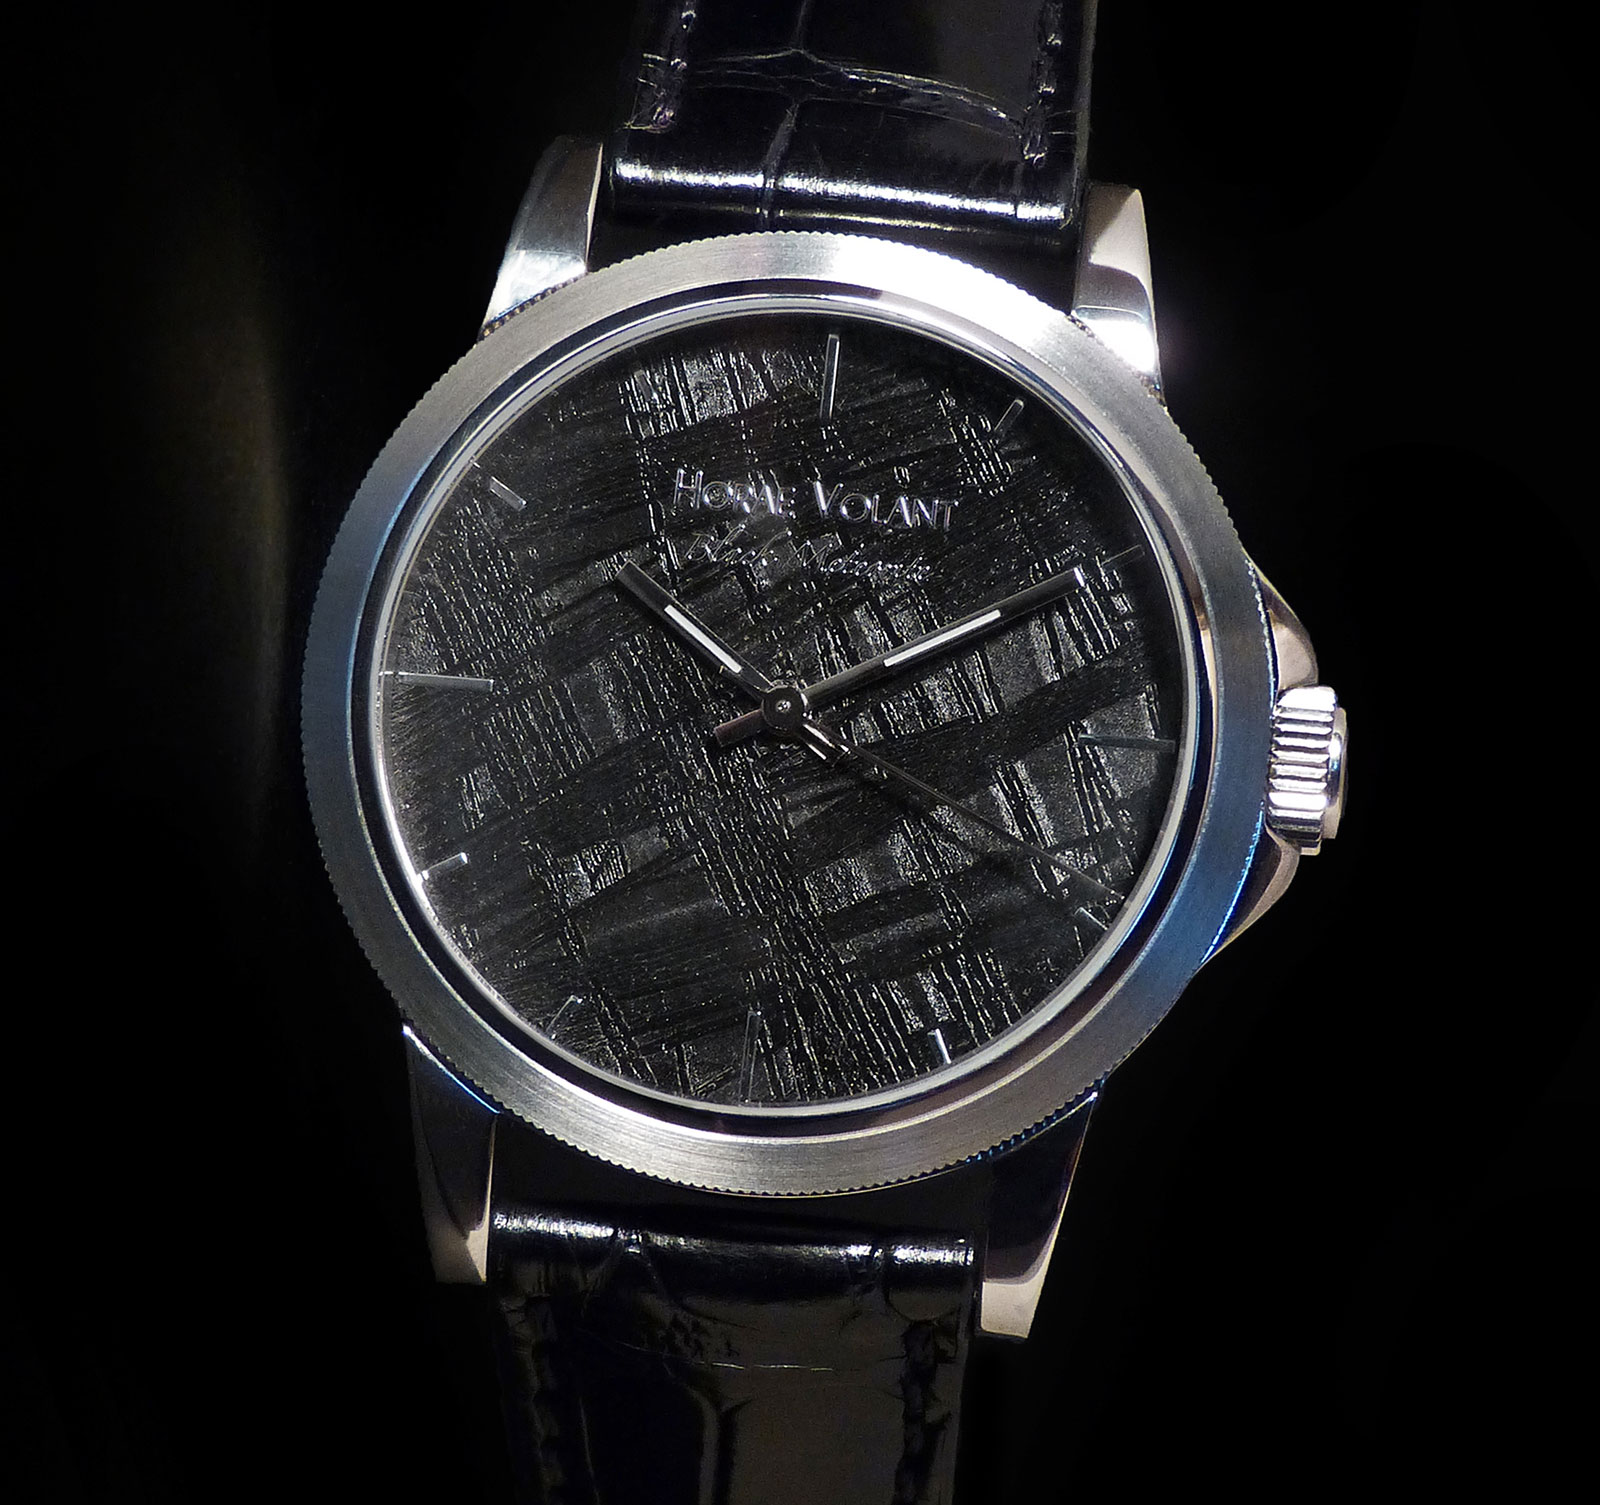 Horae Volant Black Meteorite watch 1